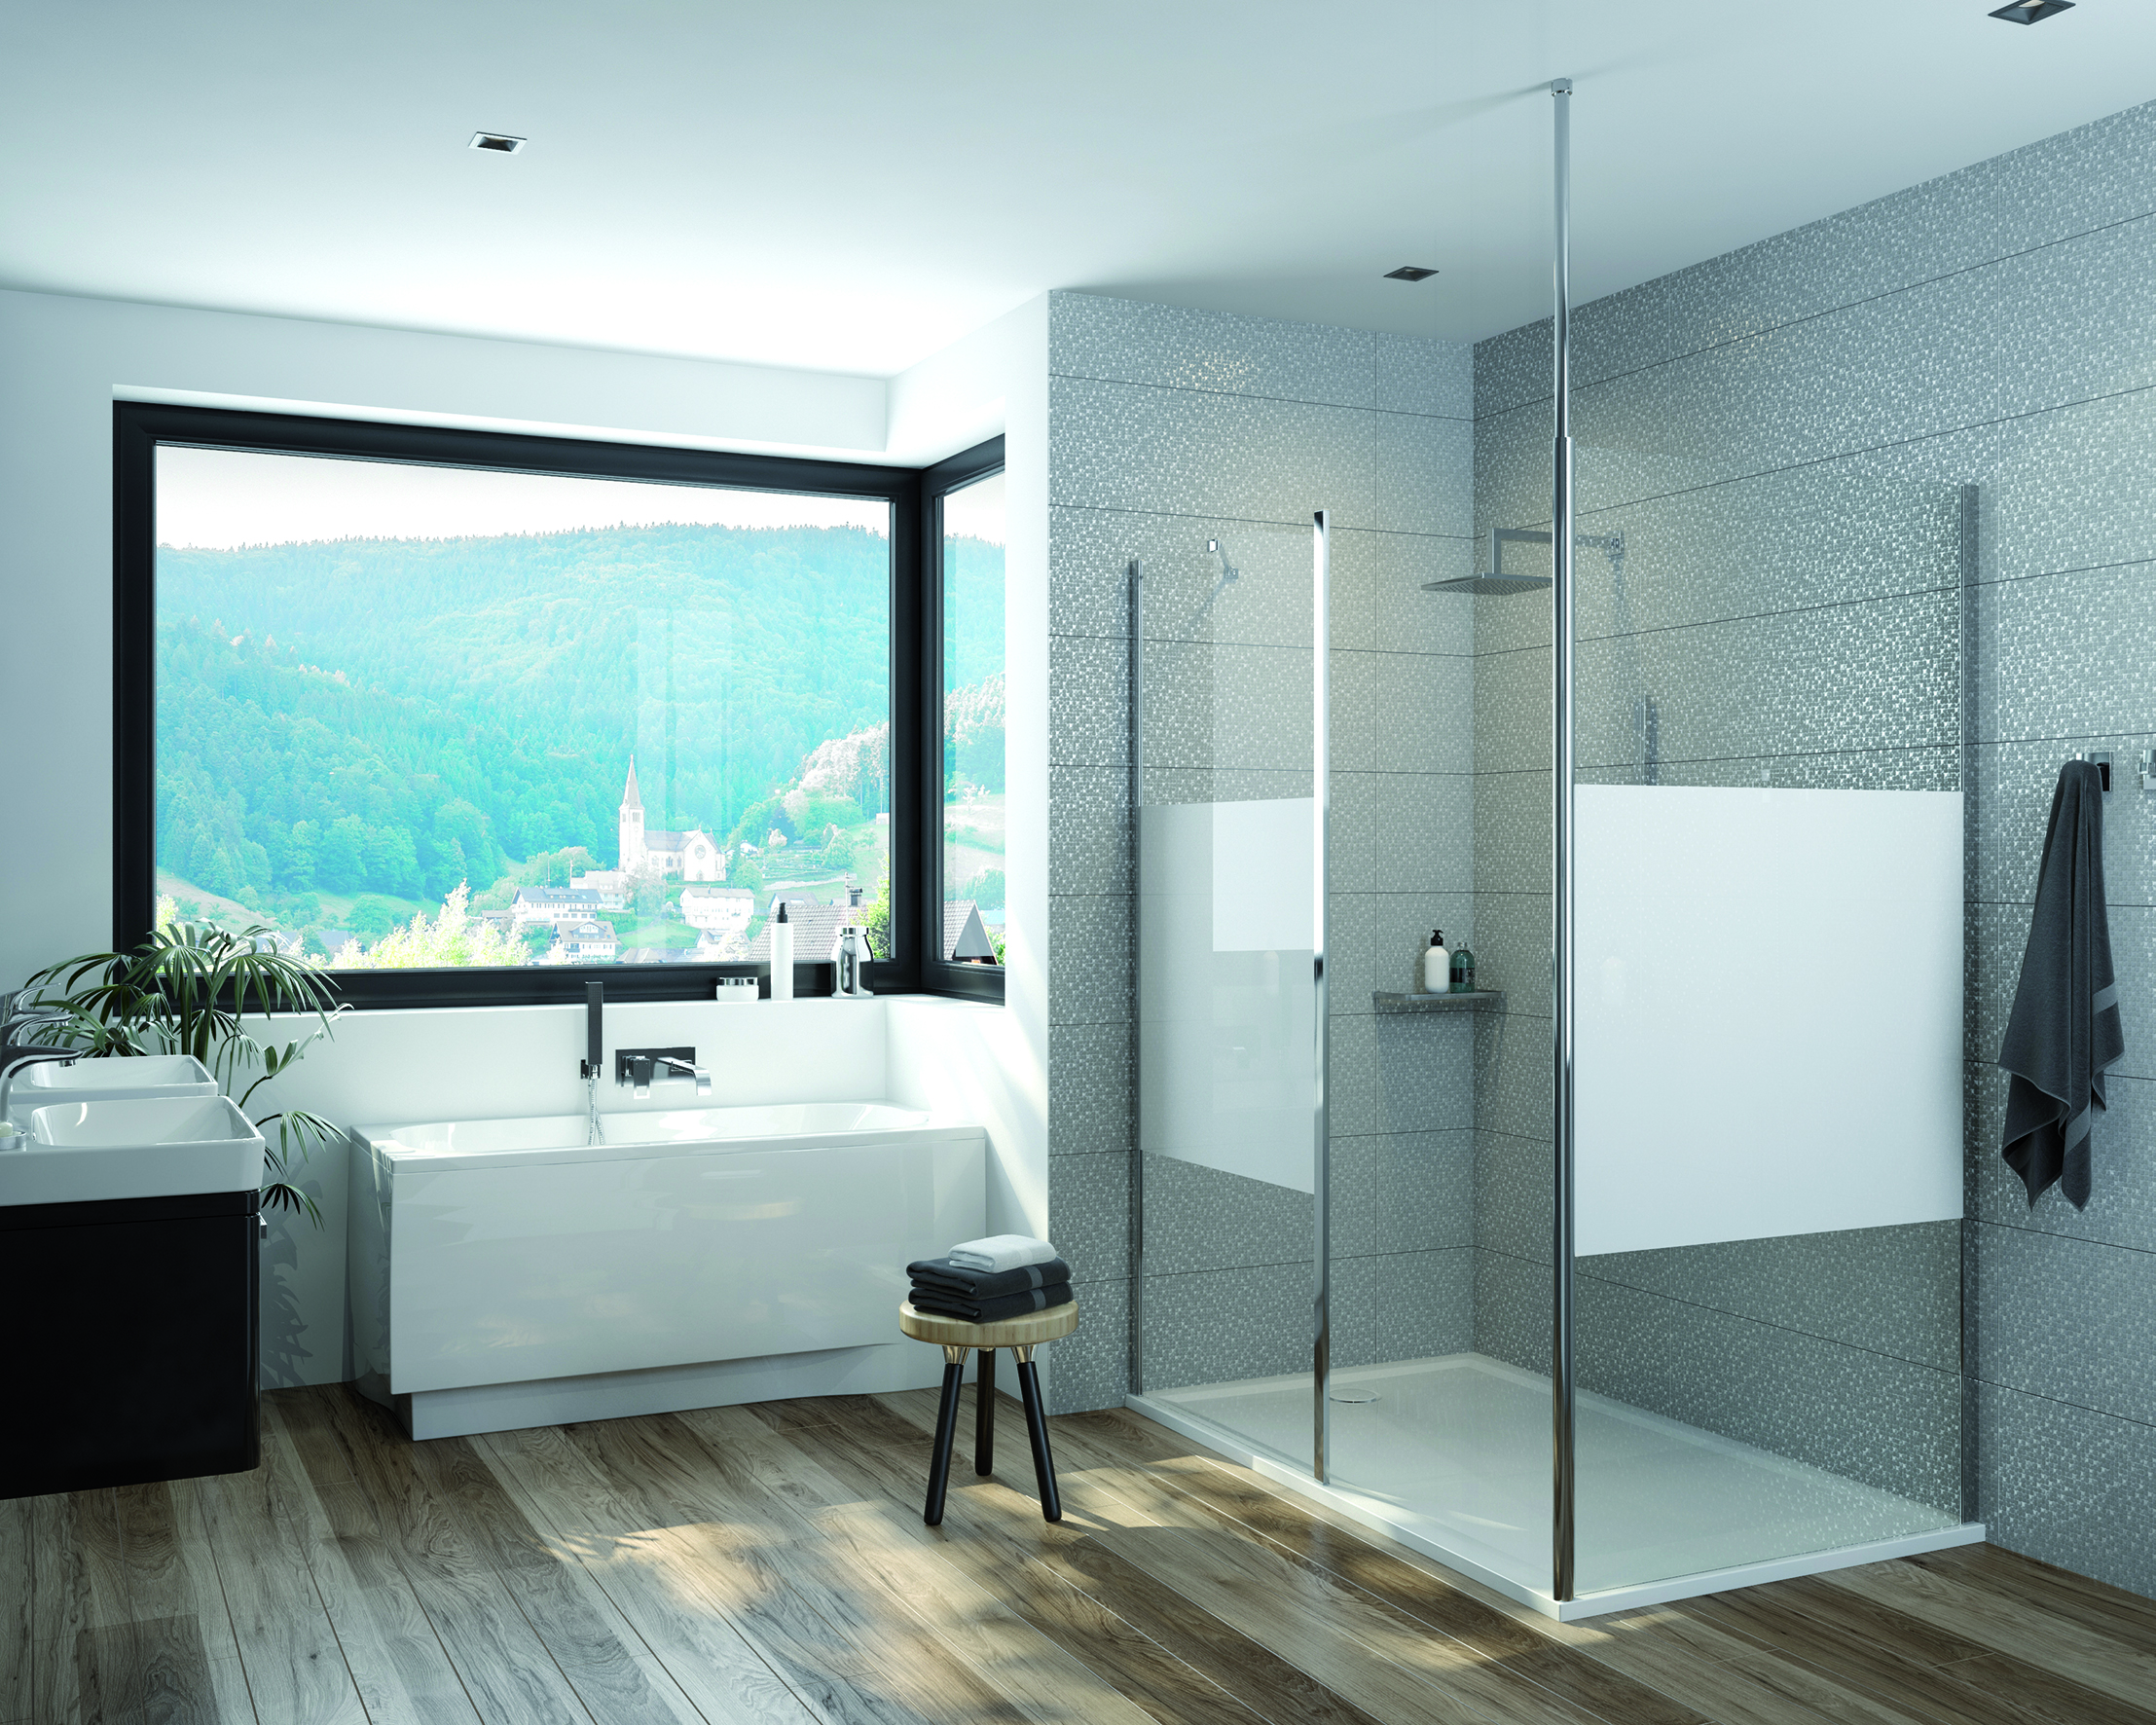 Bathtub or shower enclosure? How to combine convenience and functionality?